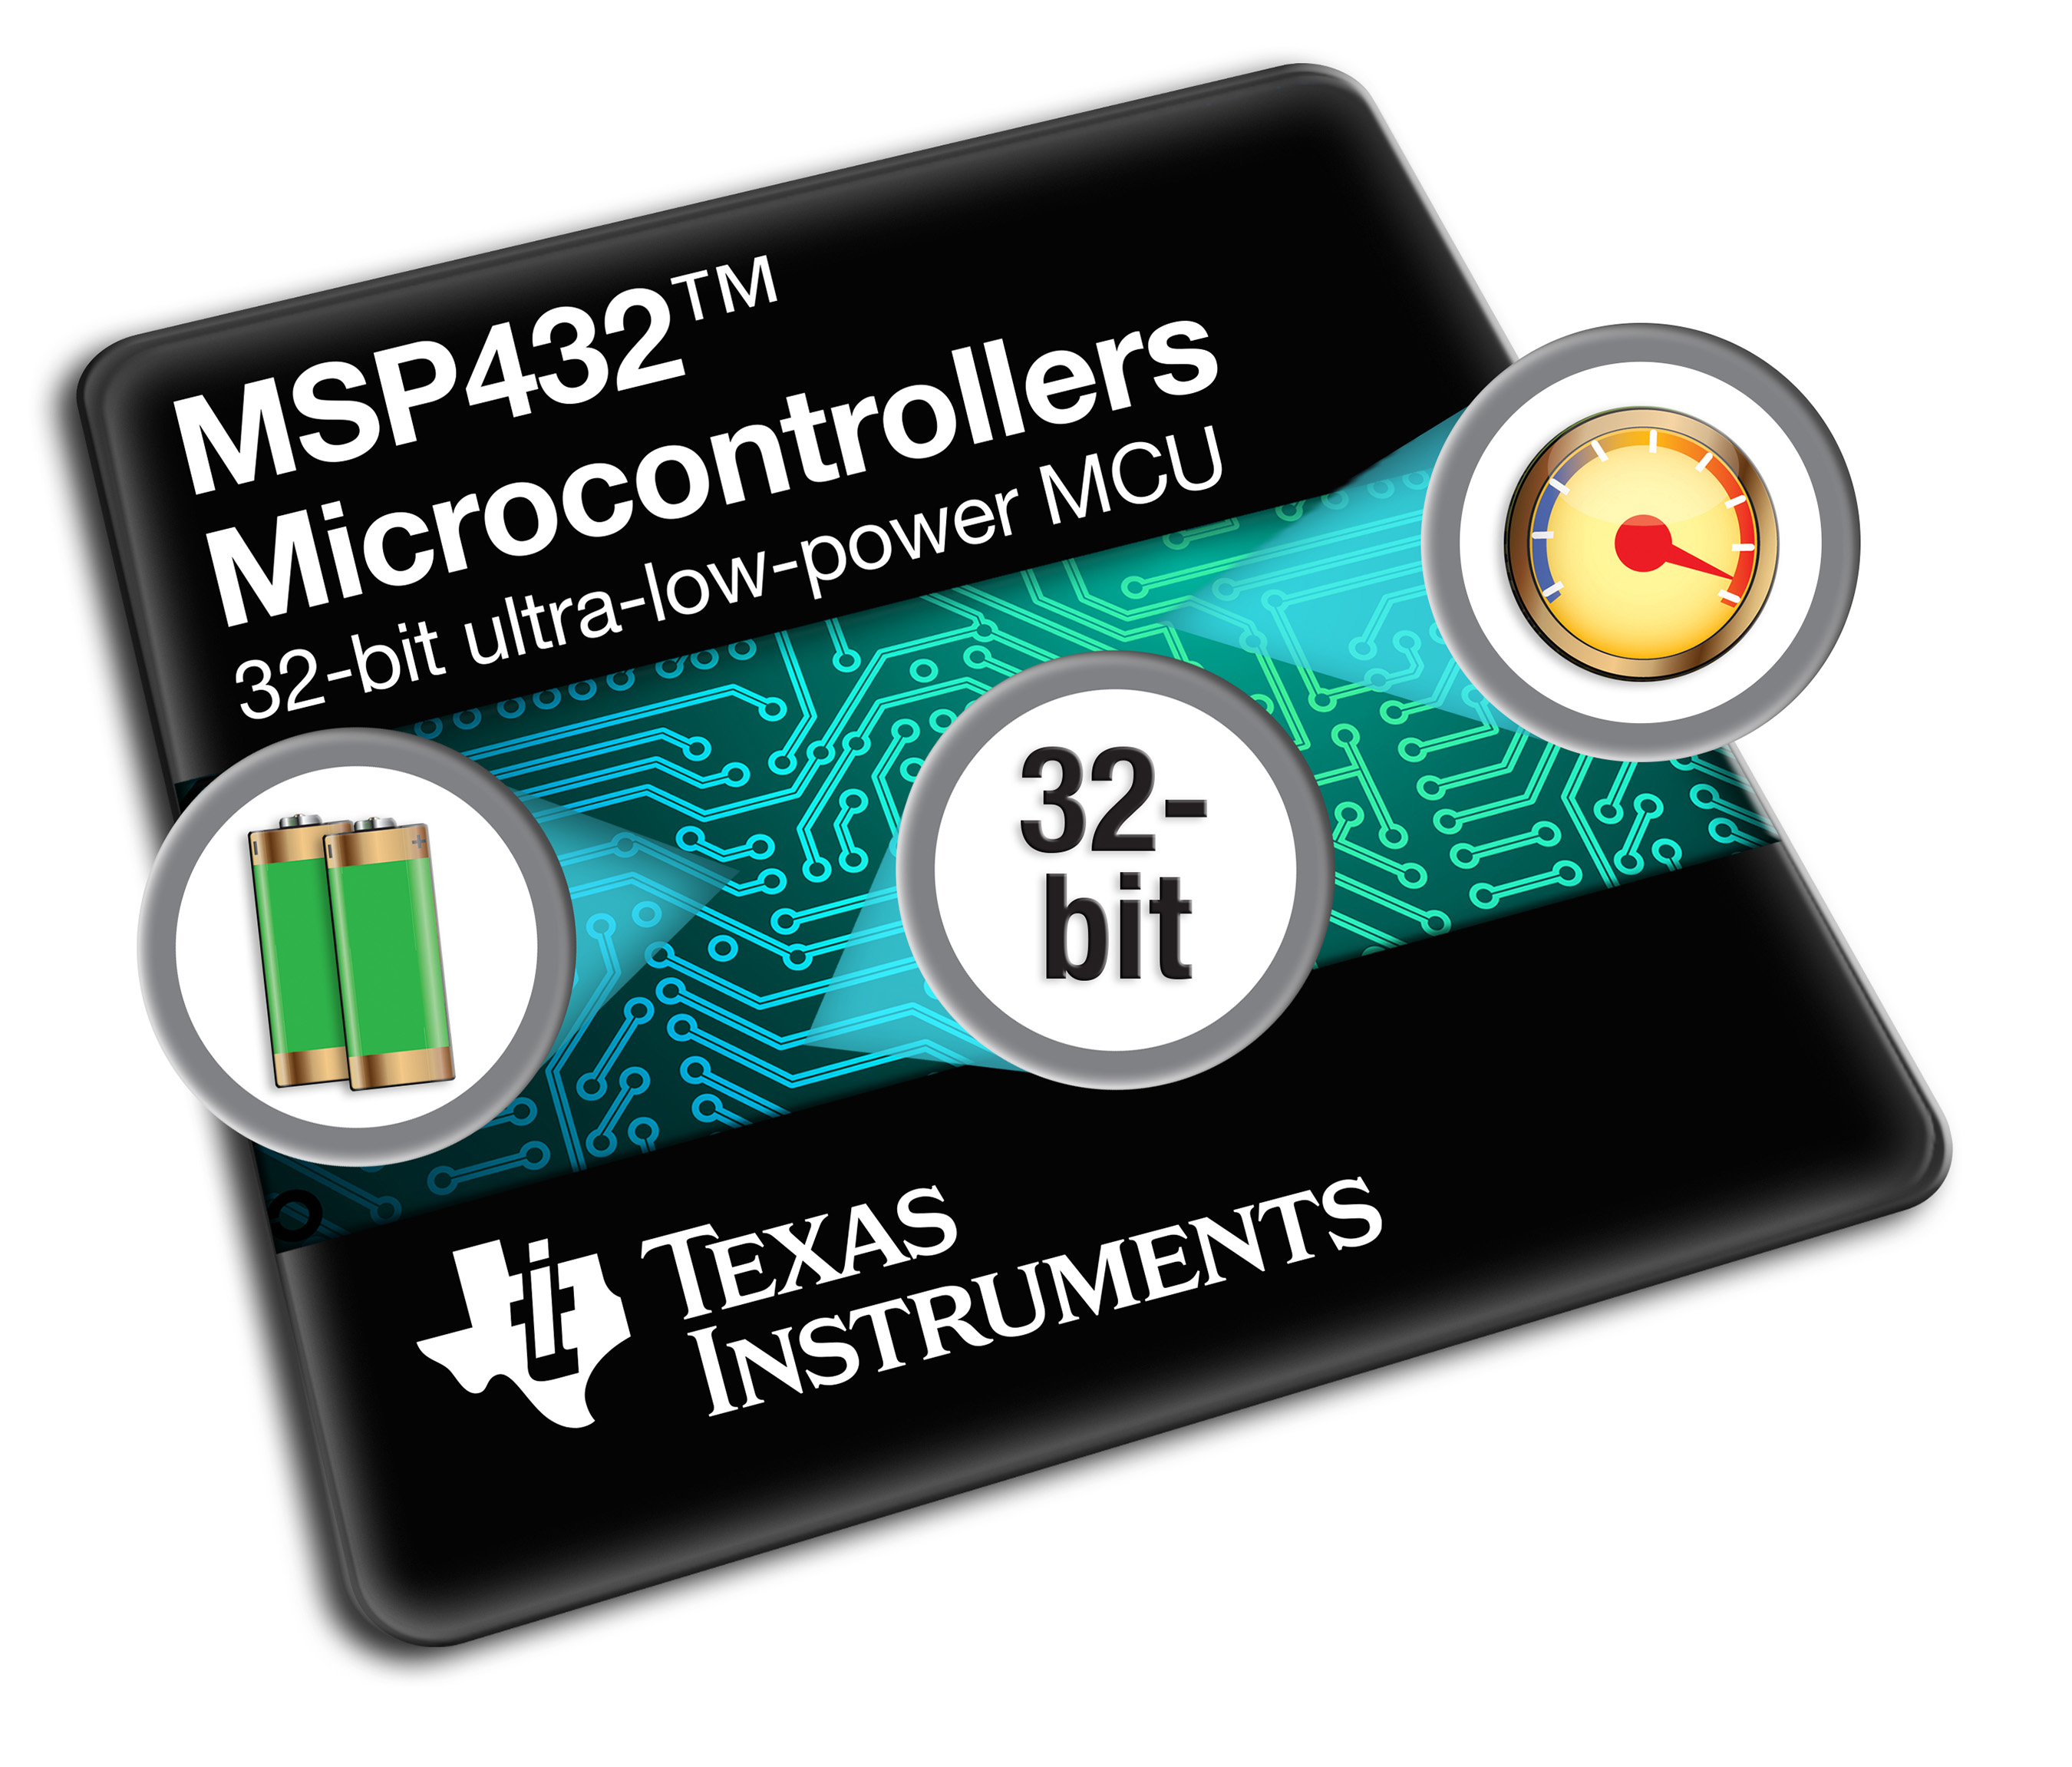 http://www.multivu.com/players/English/70647528-texas-instruments-32-bit-microcontroller/gallery/image/d48f3b8f-2ca4-47ab-9f06-6636bbdfc2c1.HR.jpg